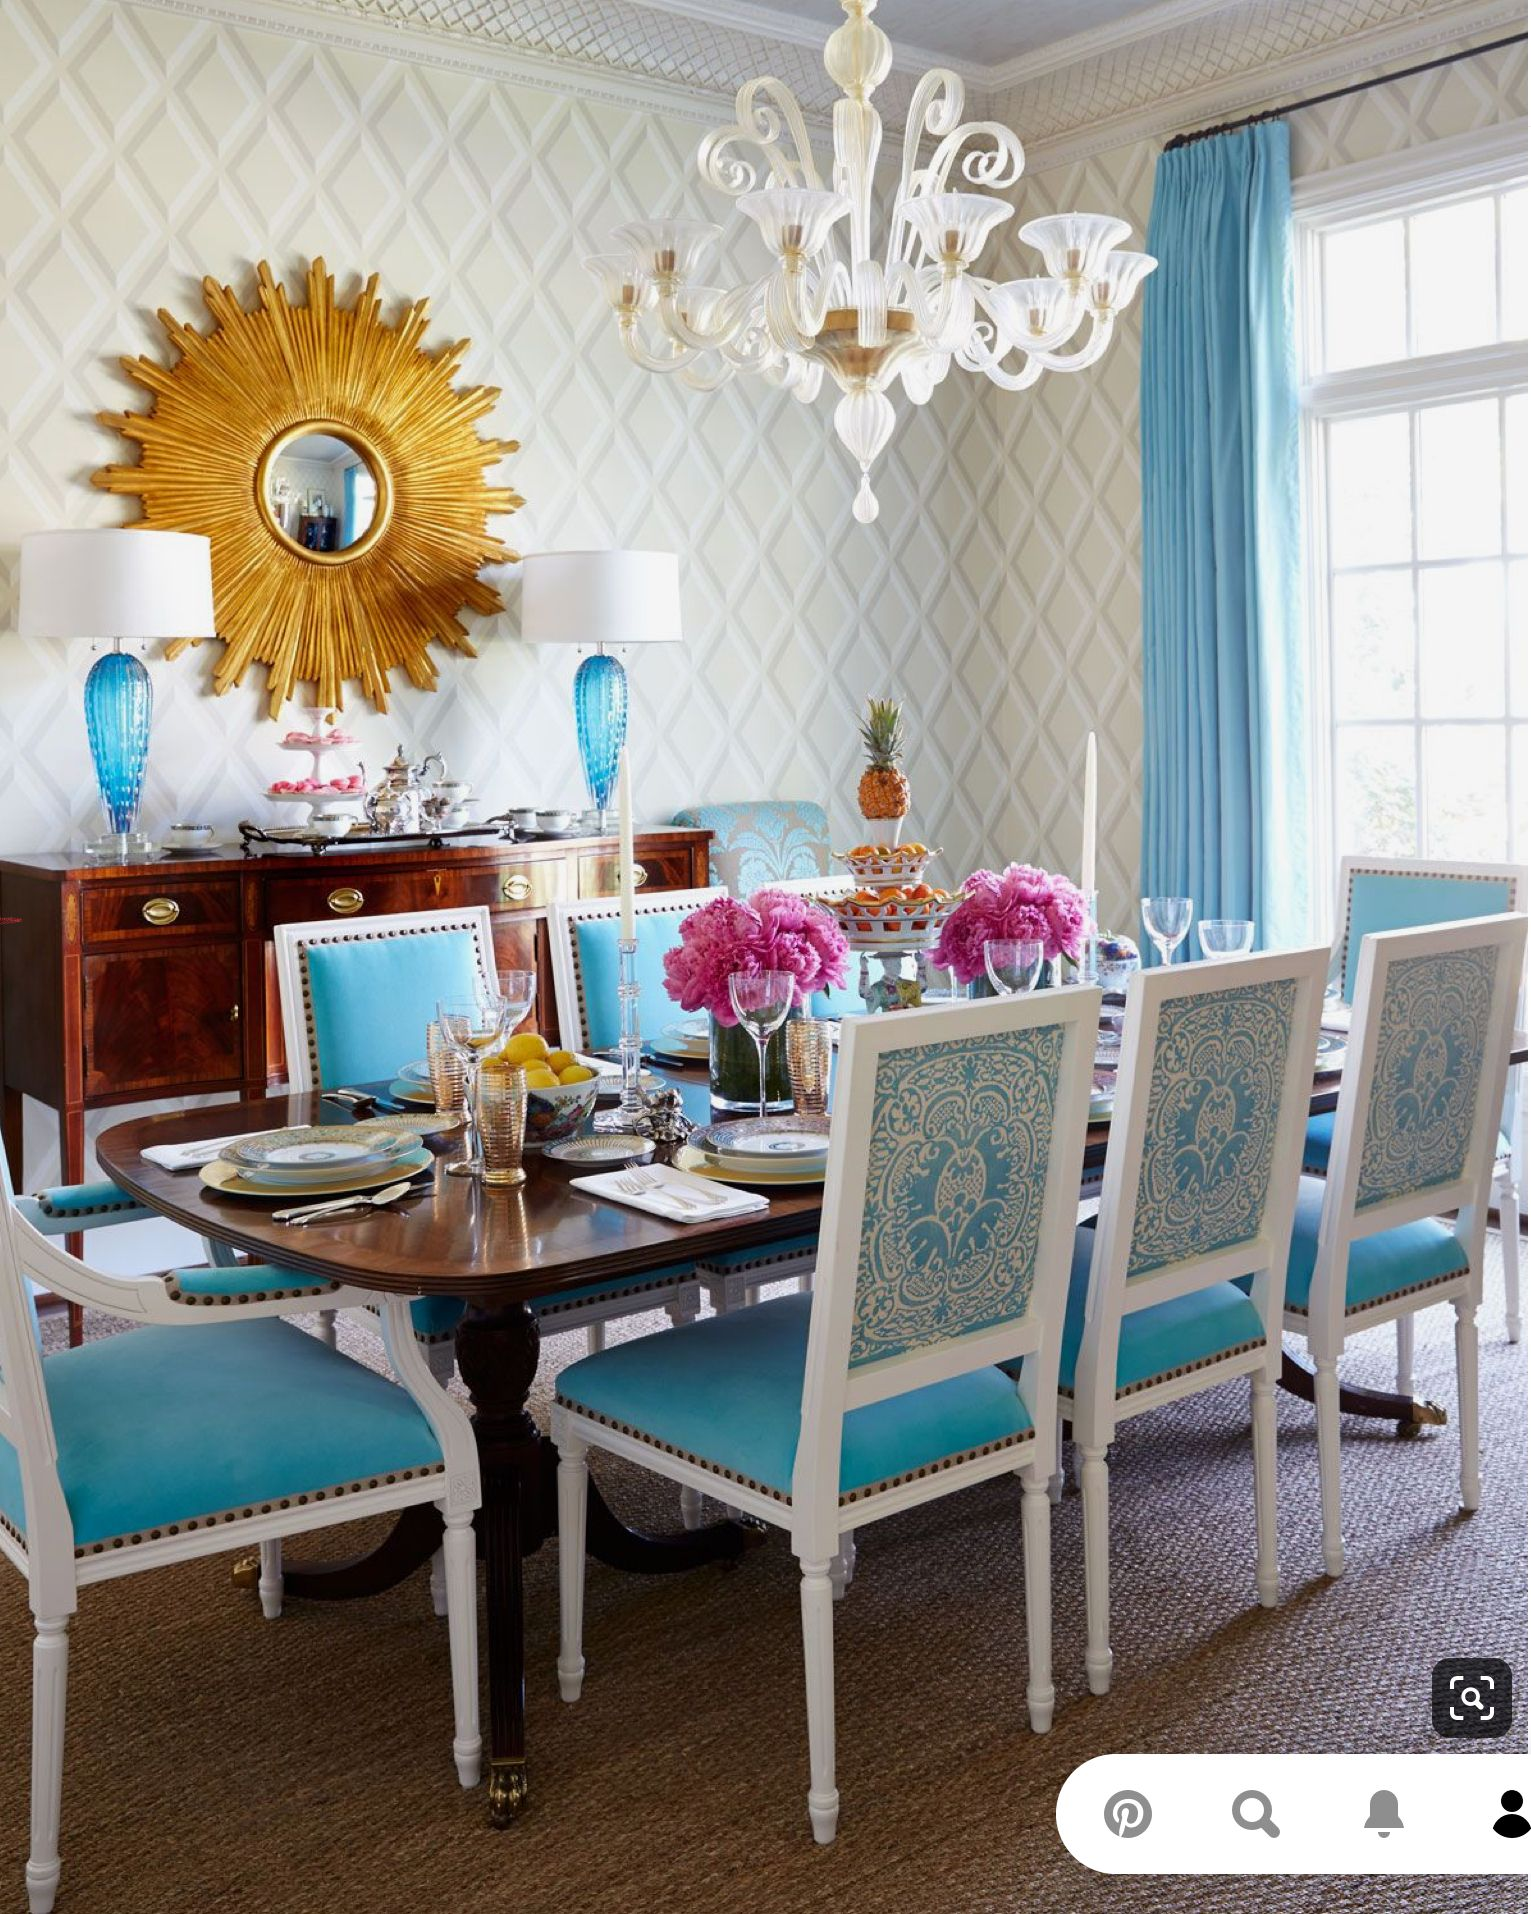 Pin By Elizabeth Sokol On Chairs Dining Room Teal Turquoise Living Room Decor Dining Room Contemporary